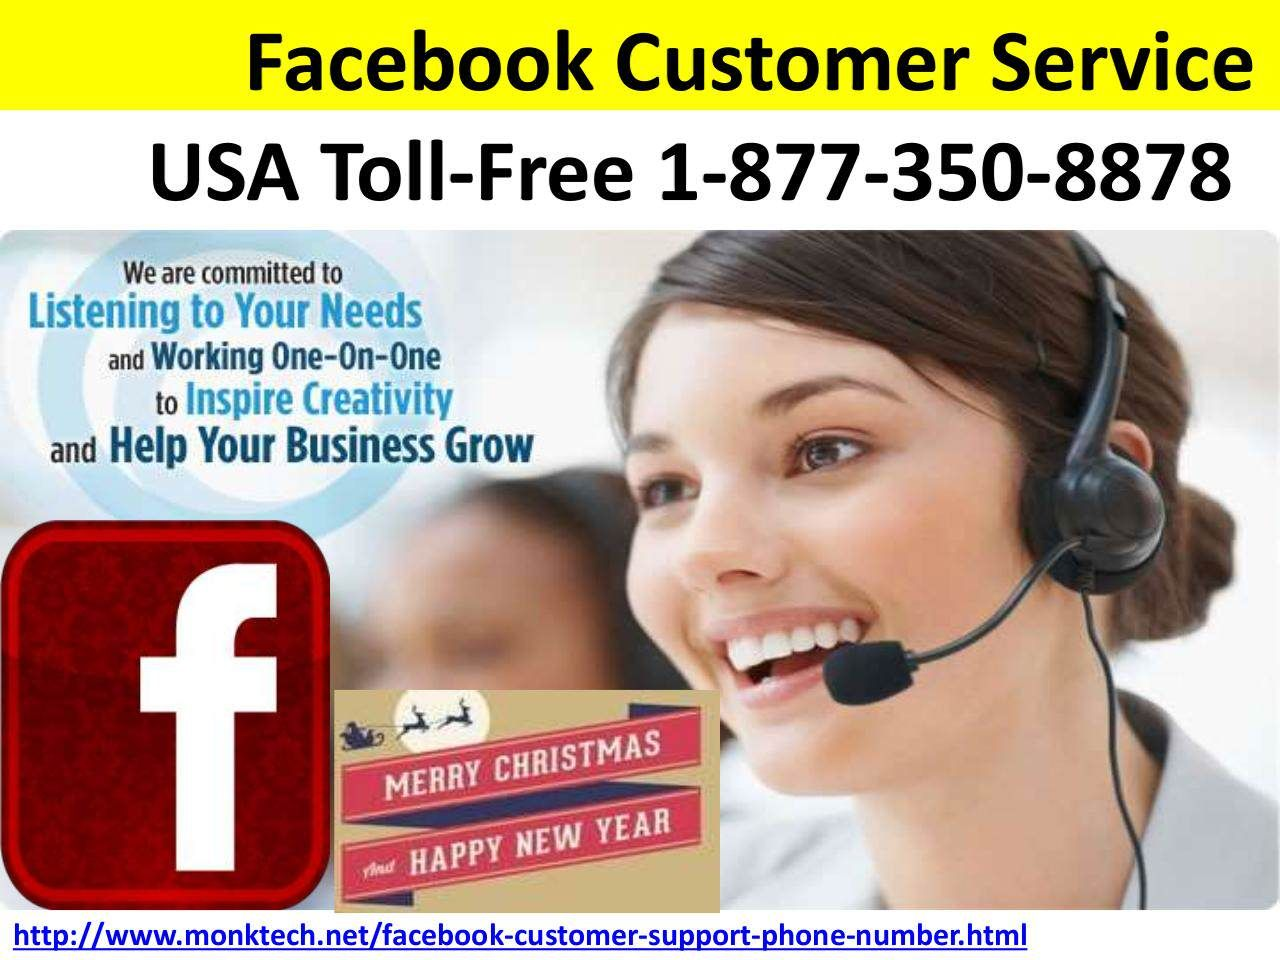 Contact Facebook Customer Service 1-877-350-8878 to get privacy setting details.In order to get the privacy setting details, you may need the help of well-accomplished experts who will help you out in securing your useful information via Facebook Customer Service. Thus, get the outstanding solution from the techies just by dialing a toll-free number 1-877-350-8878. Click on this link http://www.monktech.net/facebook-customer-support-phone-number.html for more information.